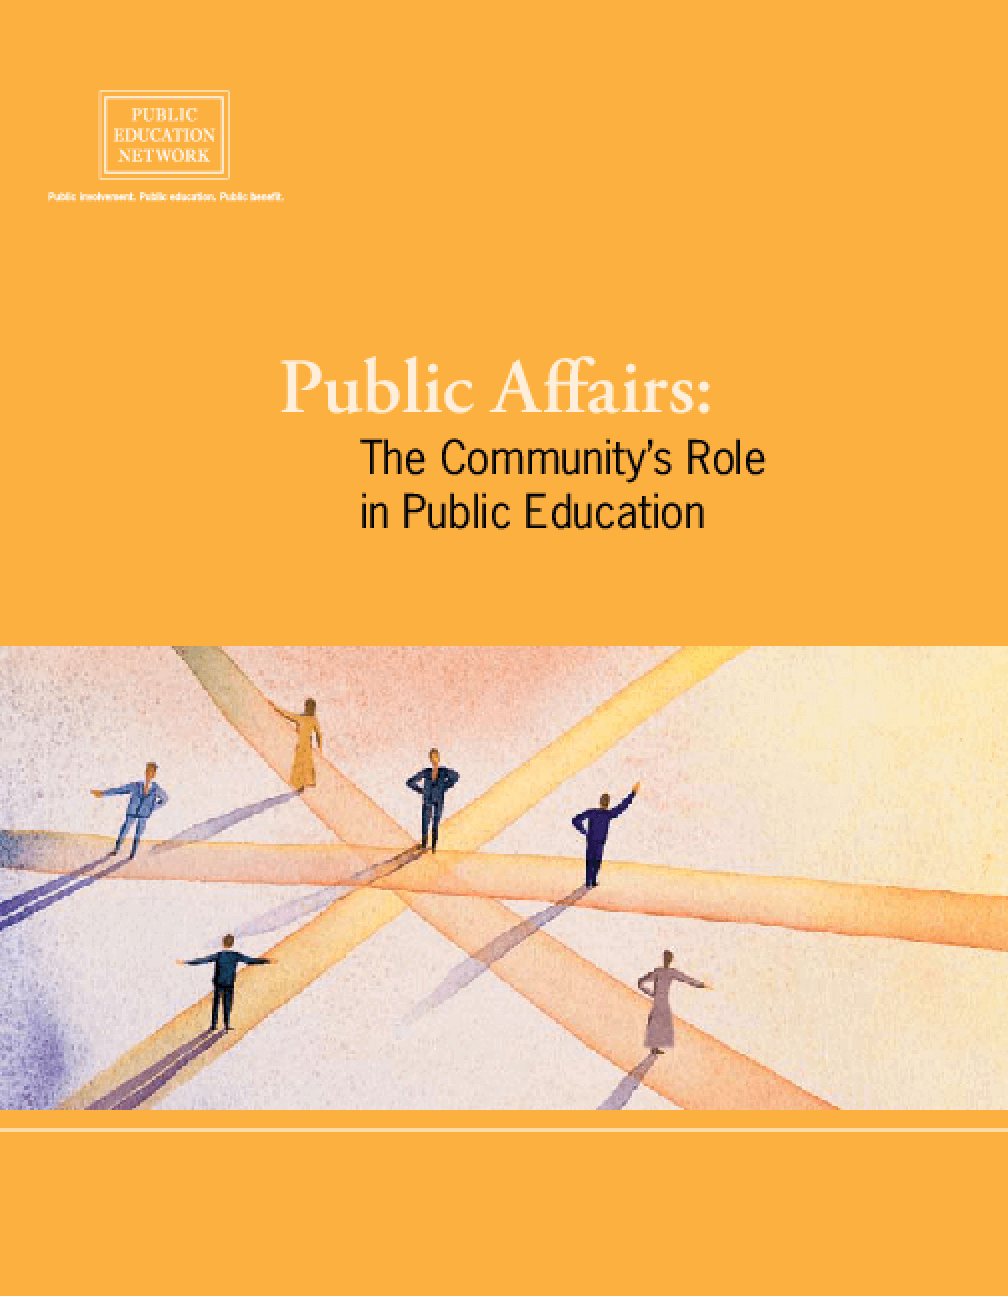 Public Affairs: The Community's Role in Public Education